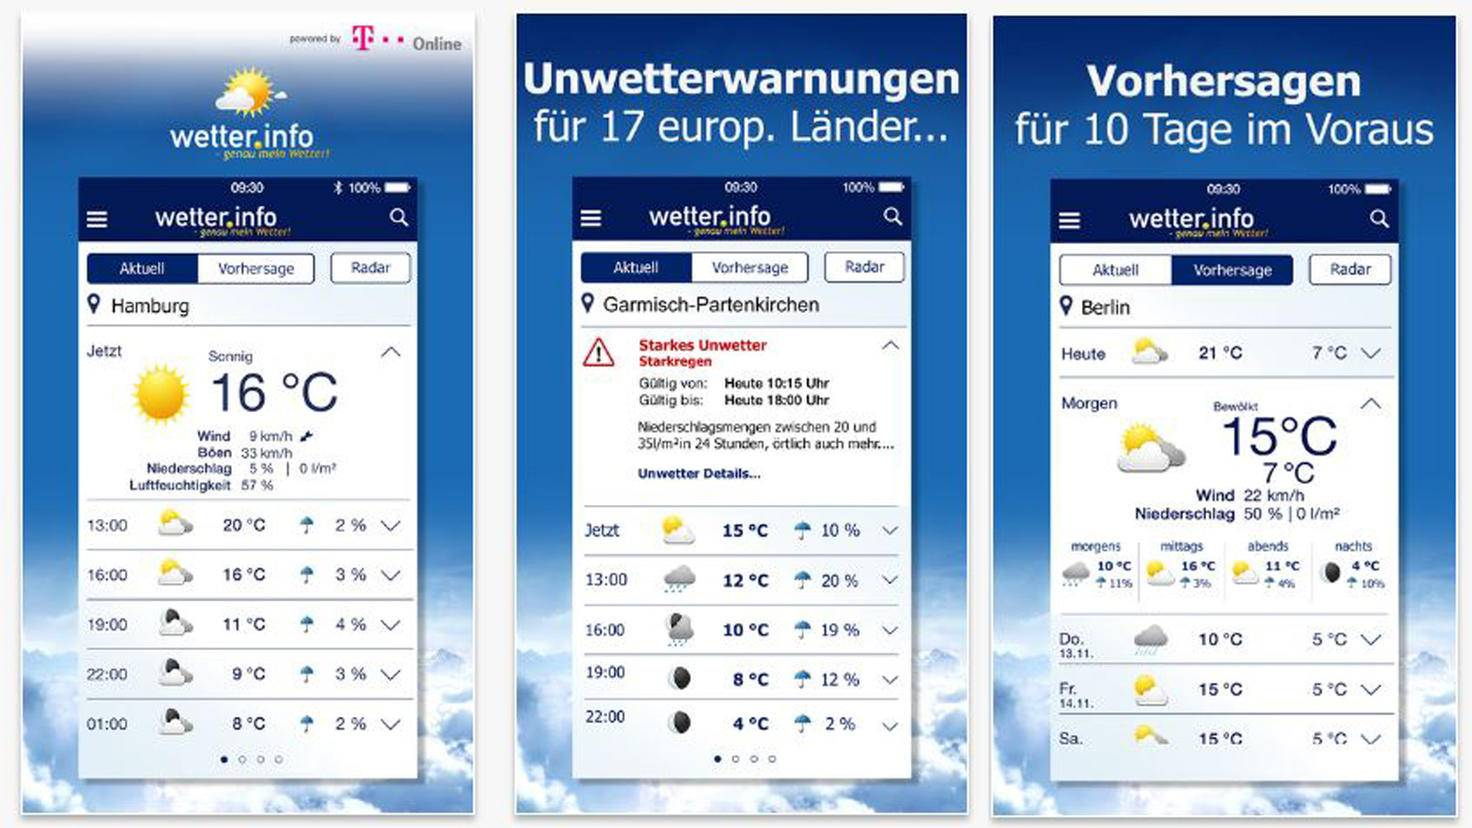 Wetter-info-iTunes-Stroeer Digital Publishing GmbH